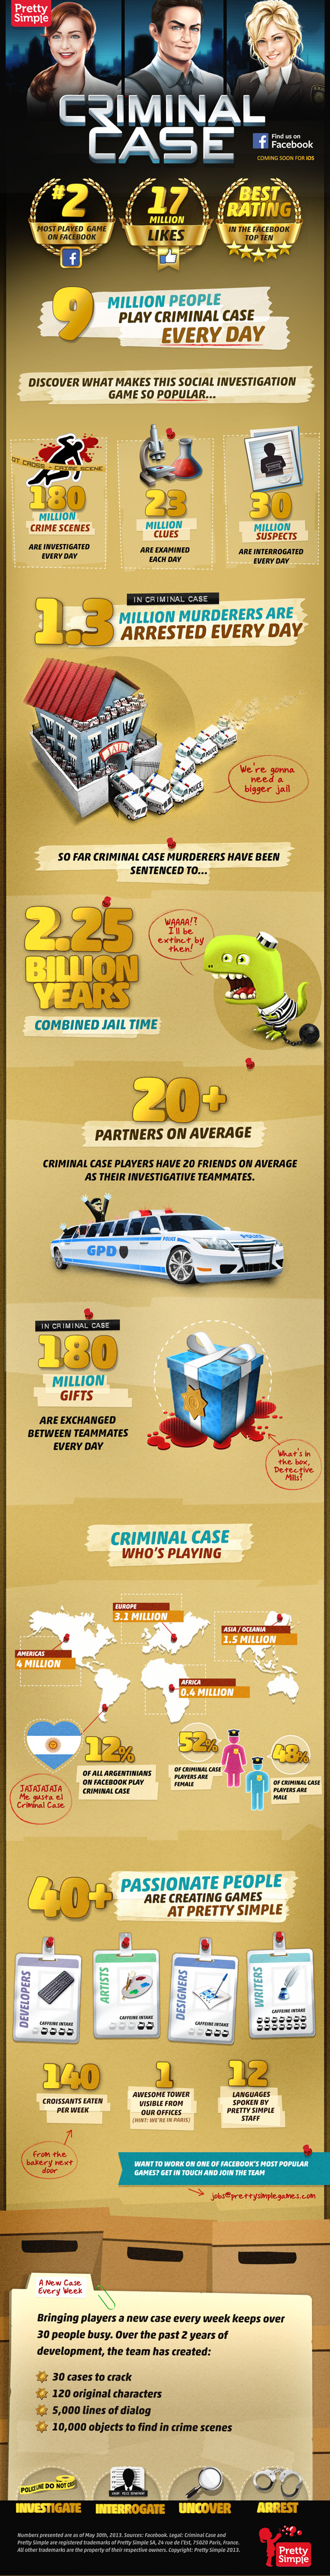 Criminal Case infographic - June 2013